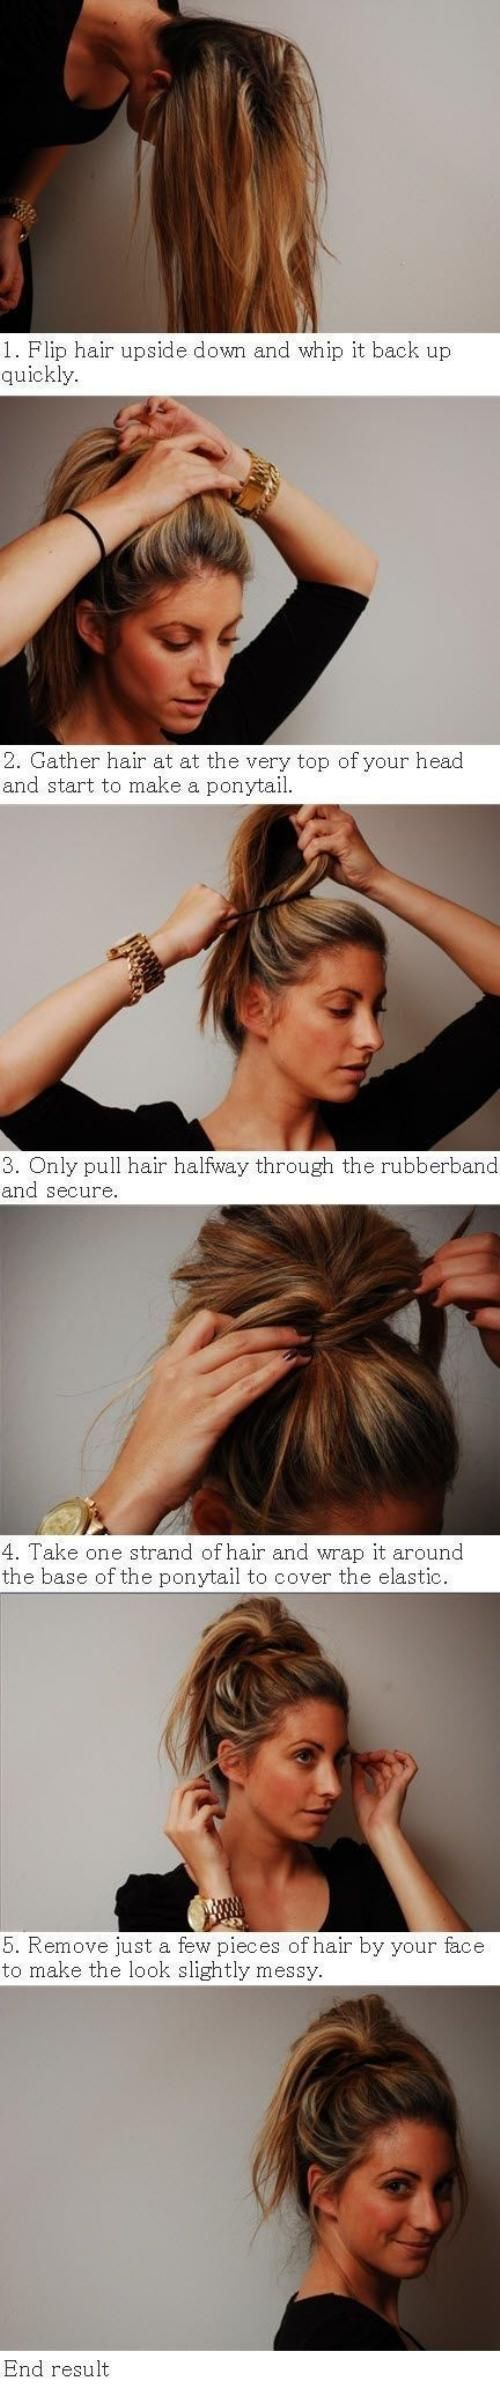 26 Do it yourself hair-styles